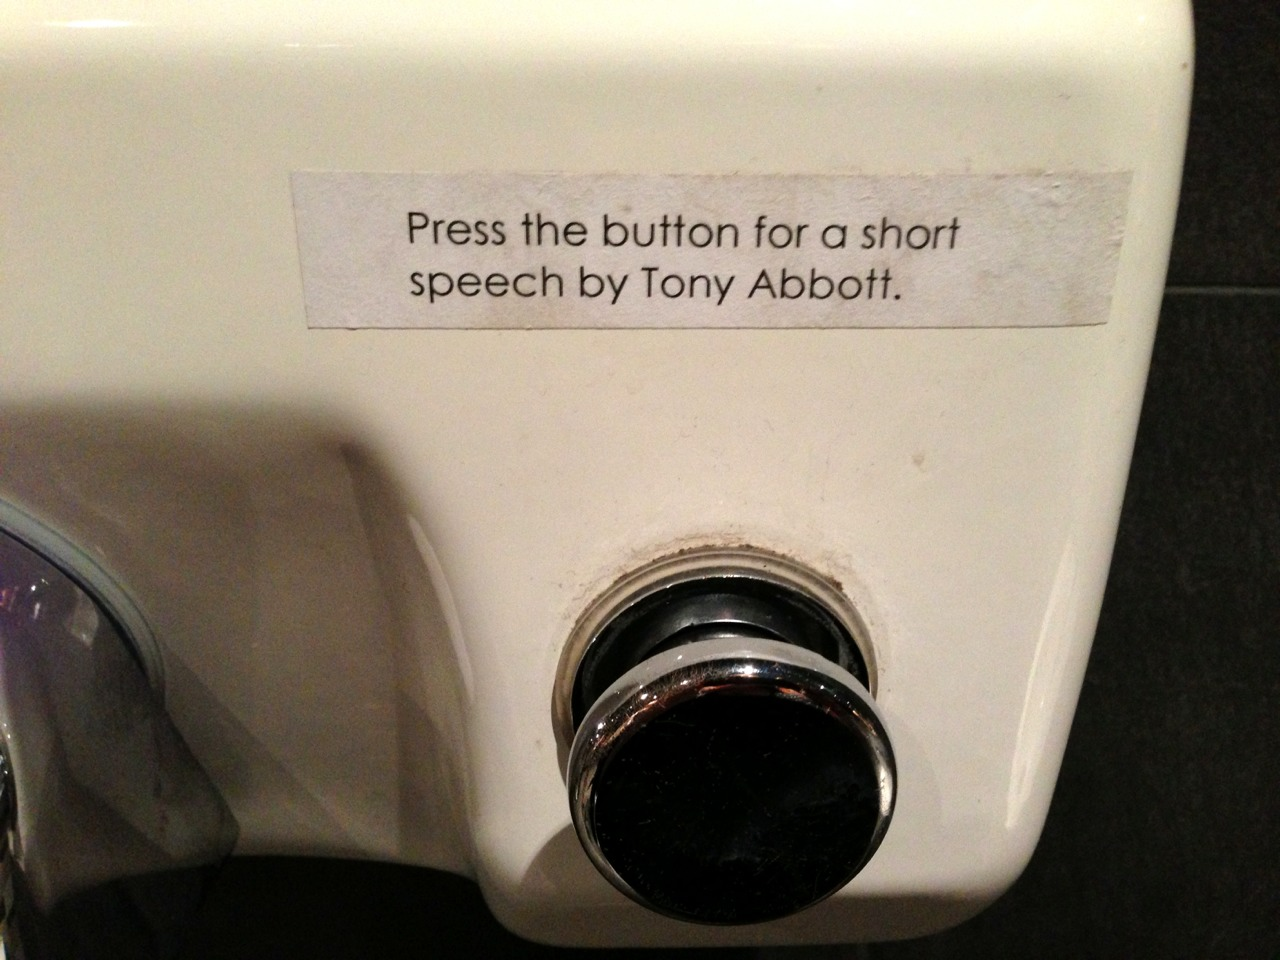 Politicians are being made fun of in Australia